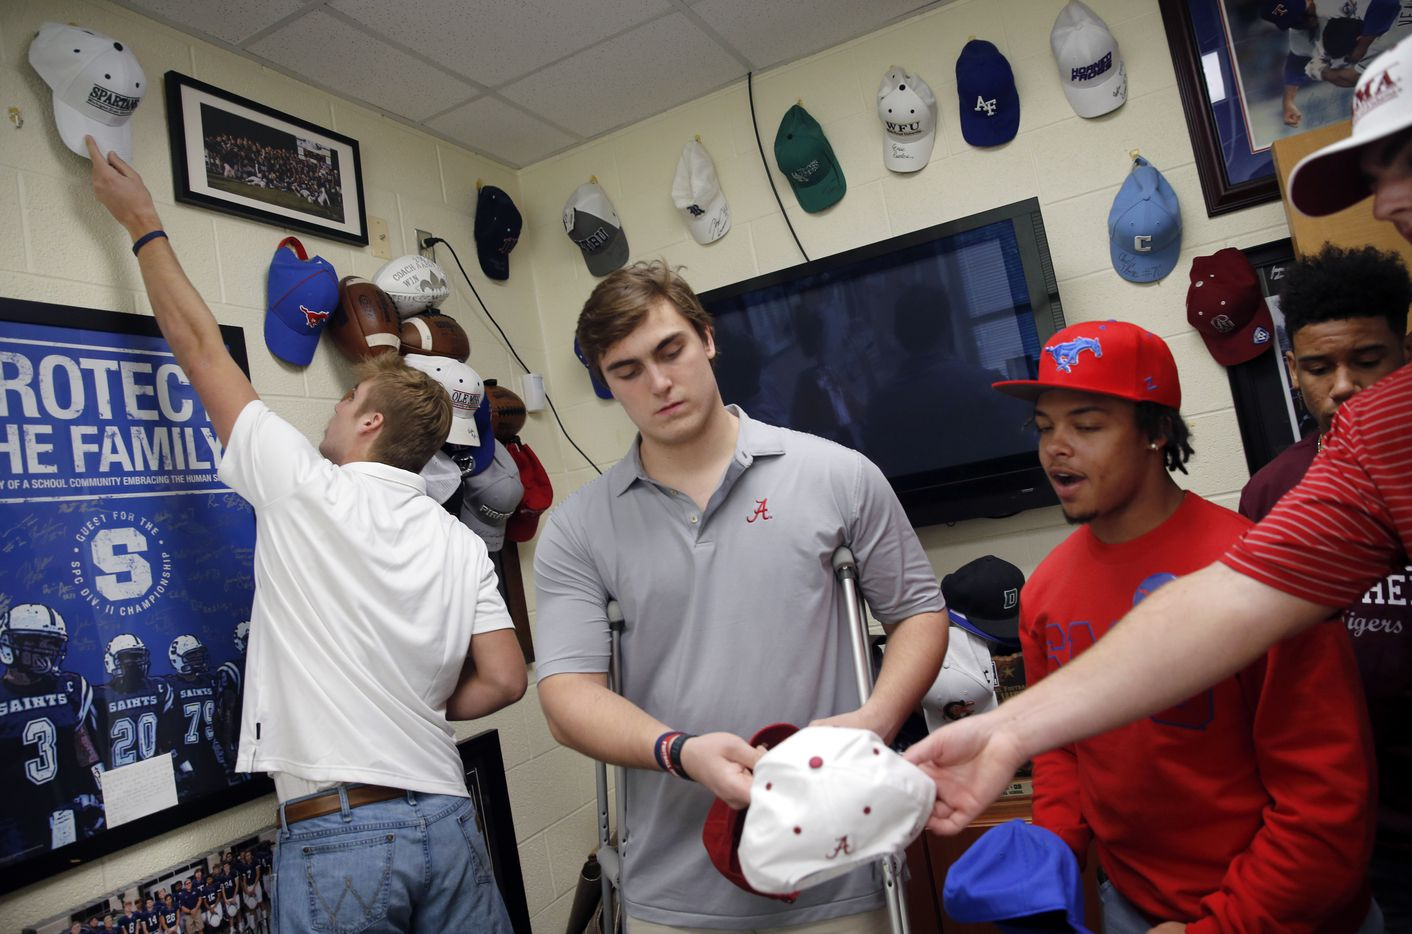 As part of tradition, players hang their signed hats in Athletics Director/Head Football Coach Aaron Beck's office at Fort Worth All Saints' Episcopal School. Paul Breedlove (Air Force) hangs hat (left) as Tommy Brockermeyer (Alabama, center) and Montaye Dawson (SMU) wait their turn after everyone signed their national letters of intent, Wednesday, December 16, 2020. (Tom Fox/The Dallas Morning News)